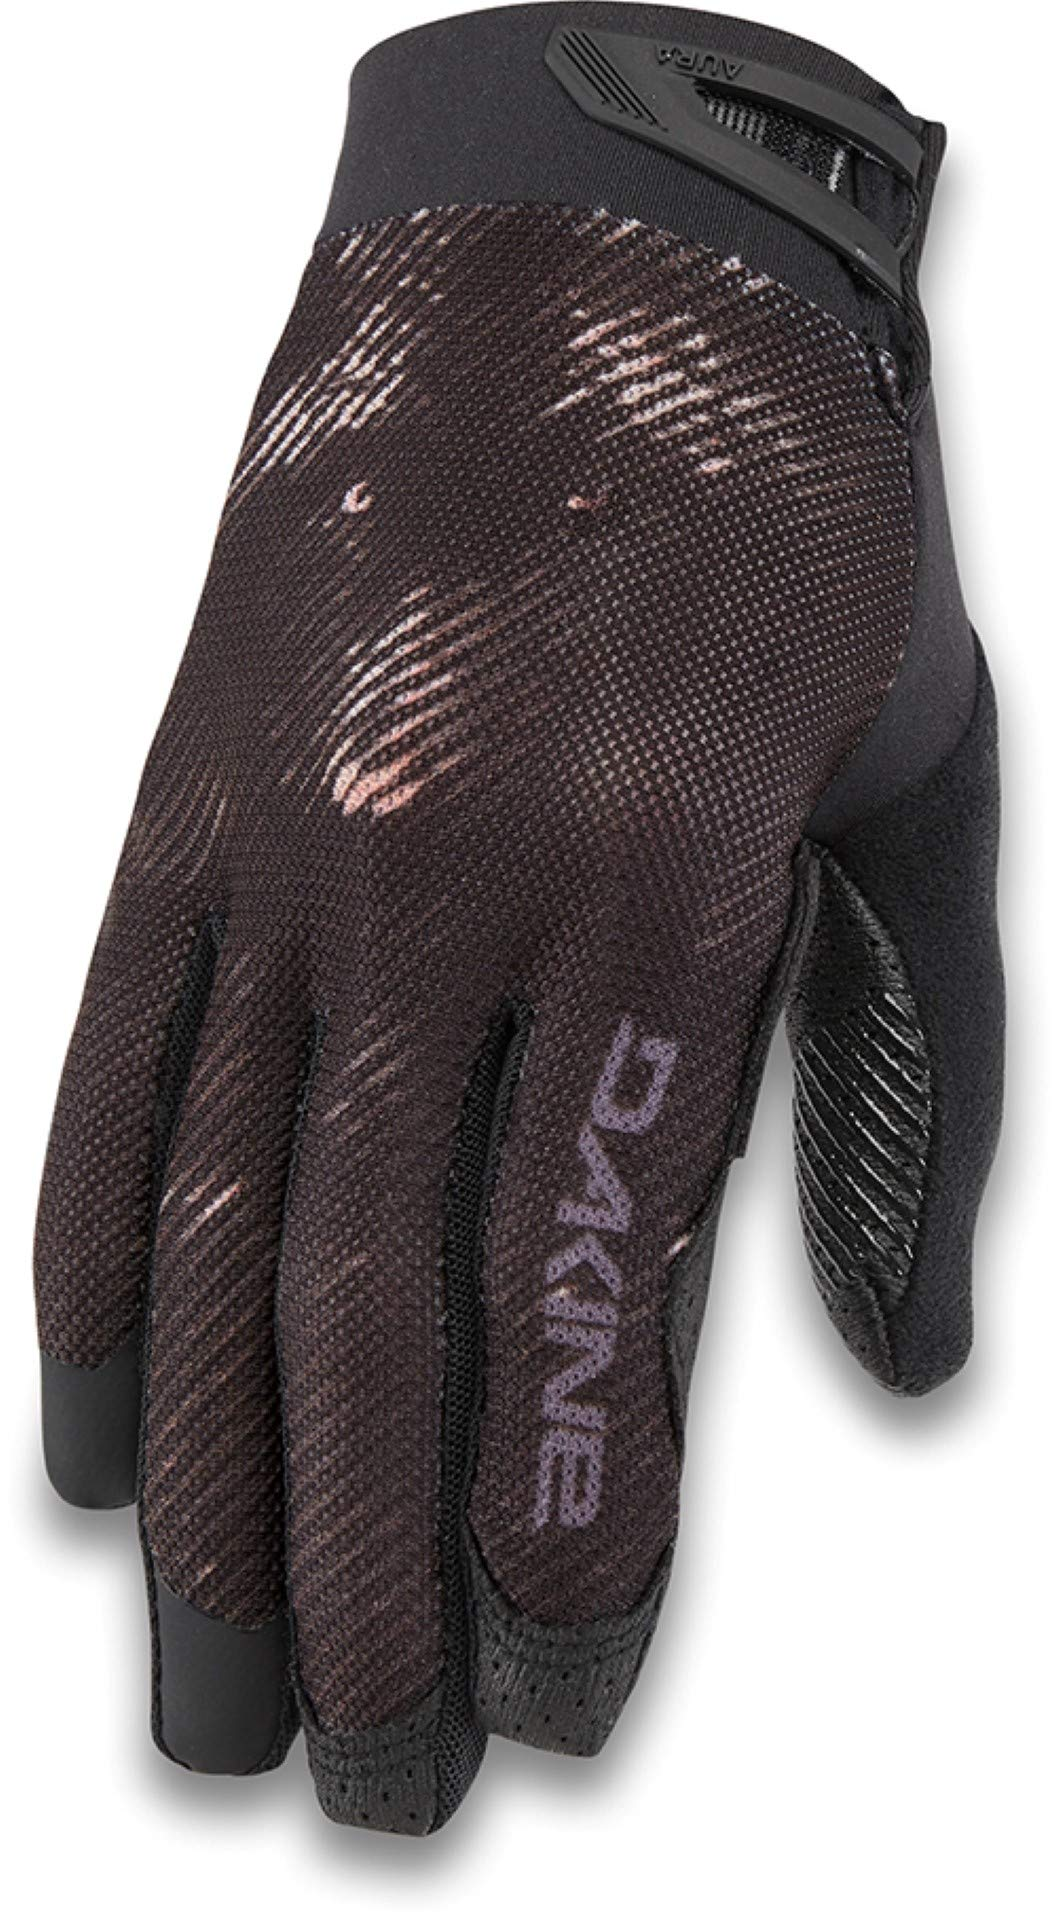 Base Brand Dakine Aura Glove - Women's False